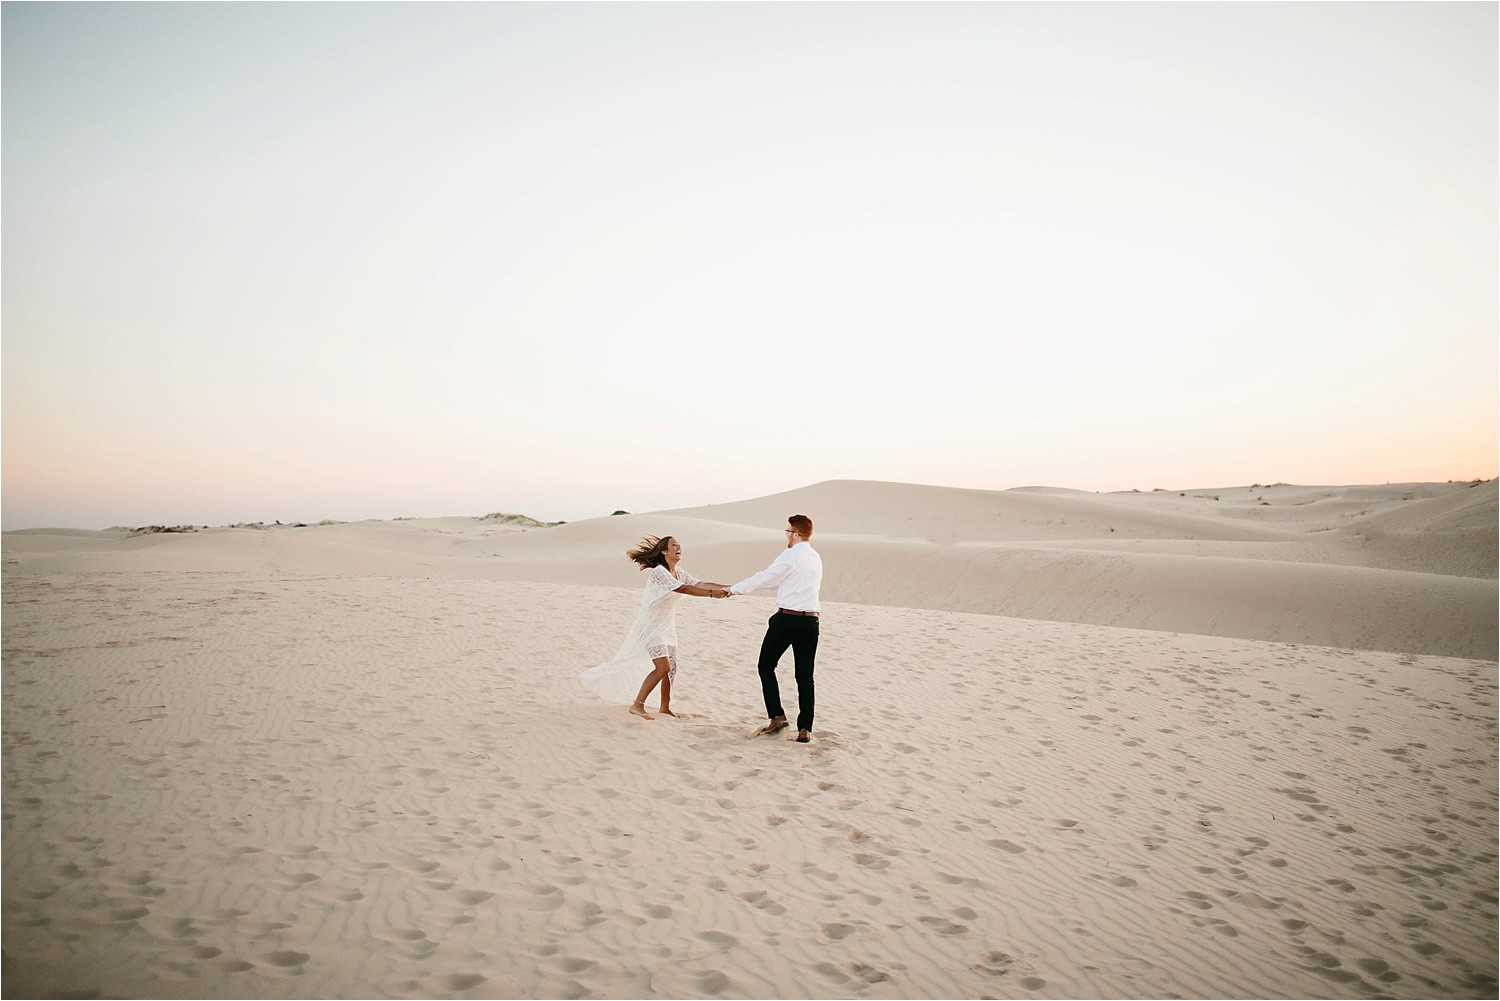 Lauren + Jacob __ a monahans sand dunes engagement session at sunrise by North Texas Wedding Photographer, Rachel Meagan Photography __ 03